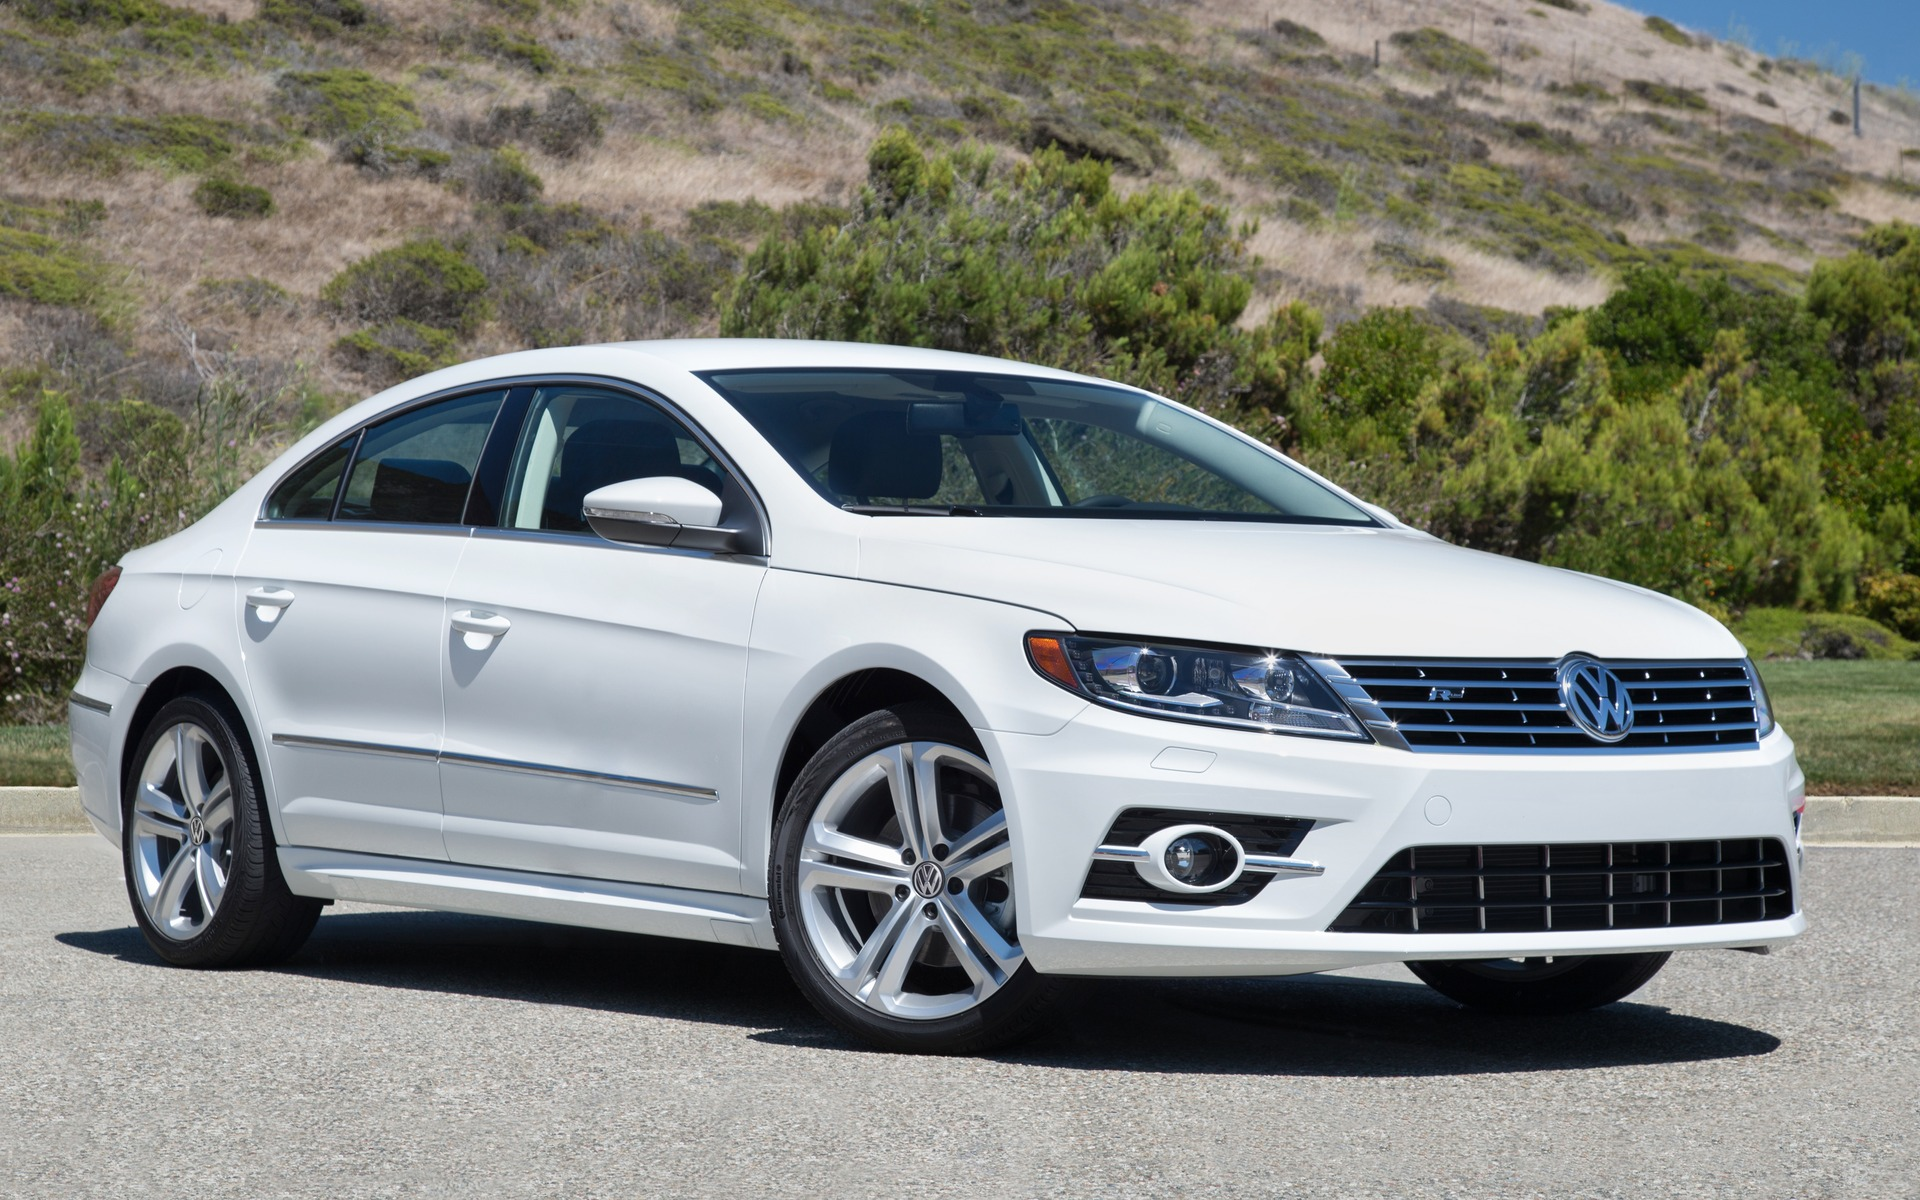 2017 Volkswagen Cc Photos 1 3 The Car Guide Audi A Fuse Box